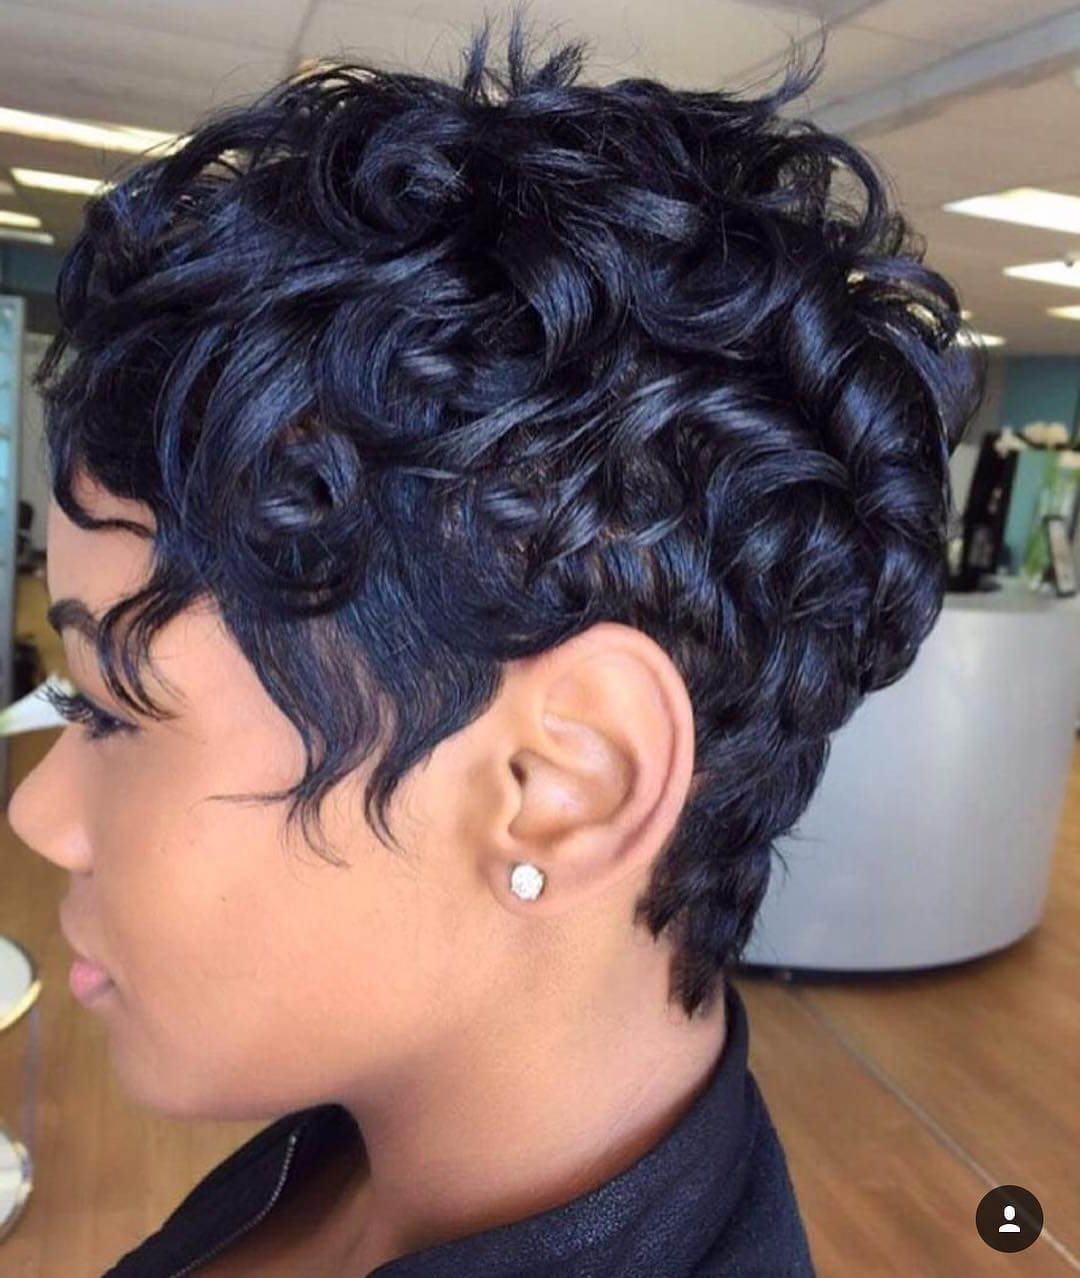 12 Curly Pixie Cut For Short Or Medium Length Hair Regarding Pixie Haircuts With Tight Curls (View 18 of 20)